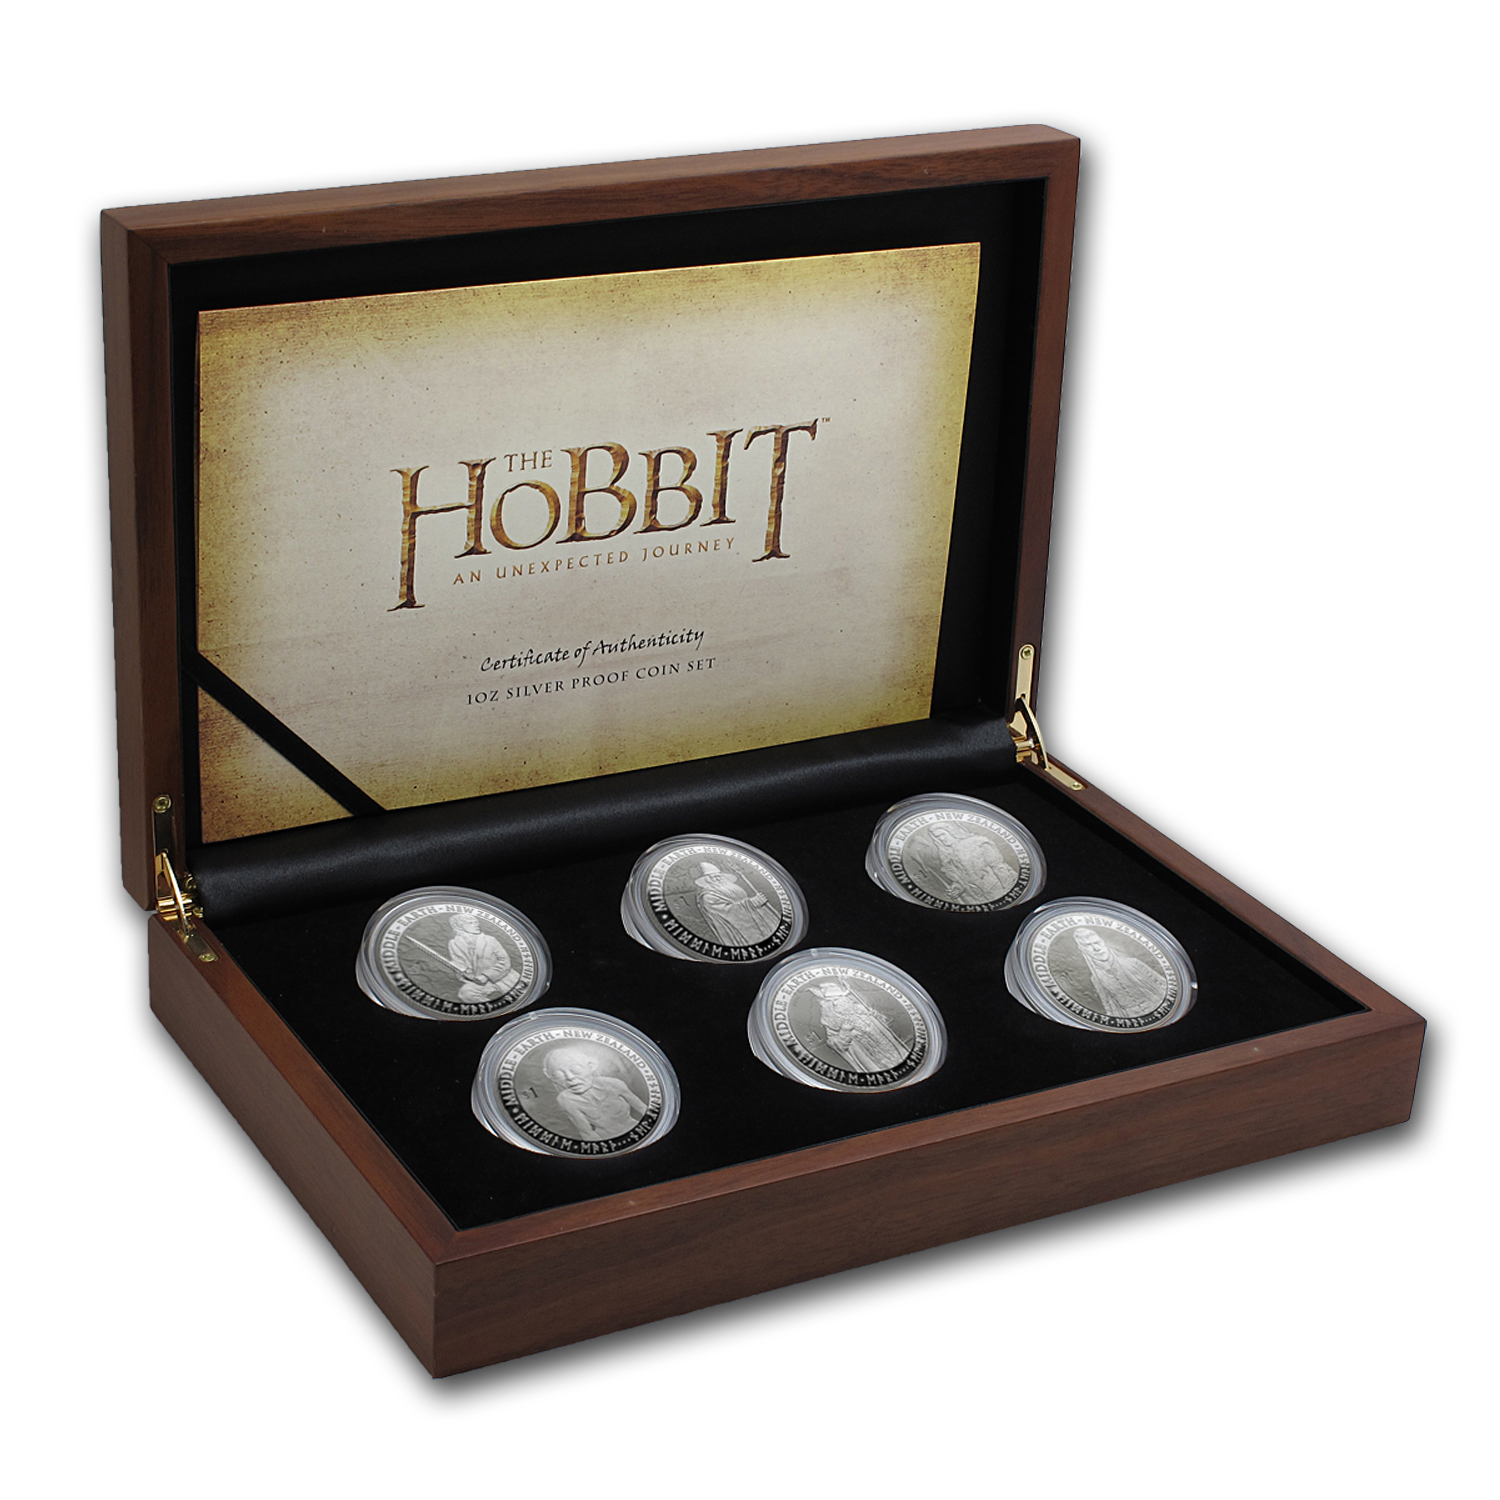 2012 New Zealand 6-Coin 1 oz Silver $1 The Hobbit Proof Set